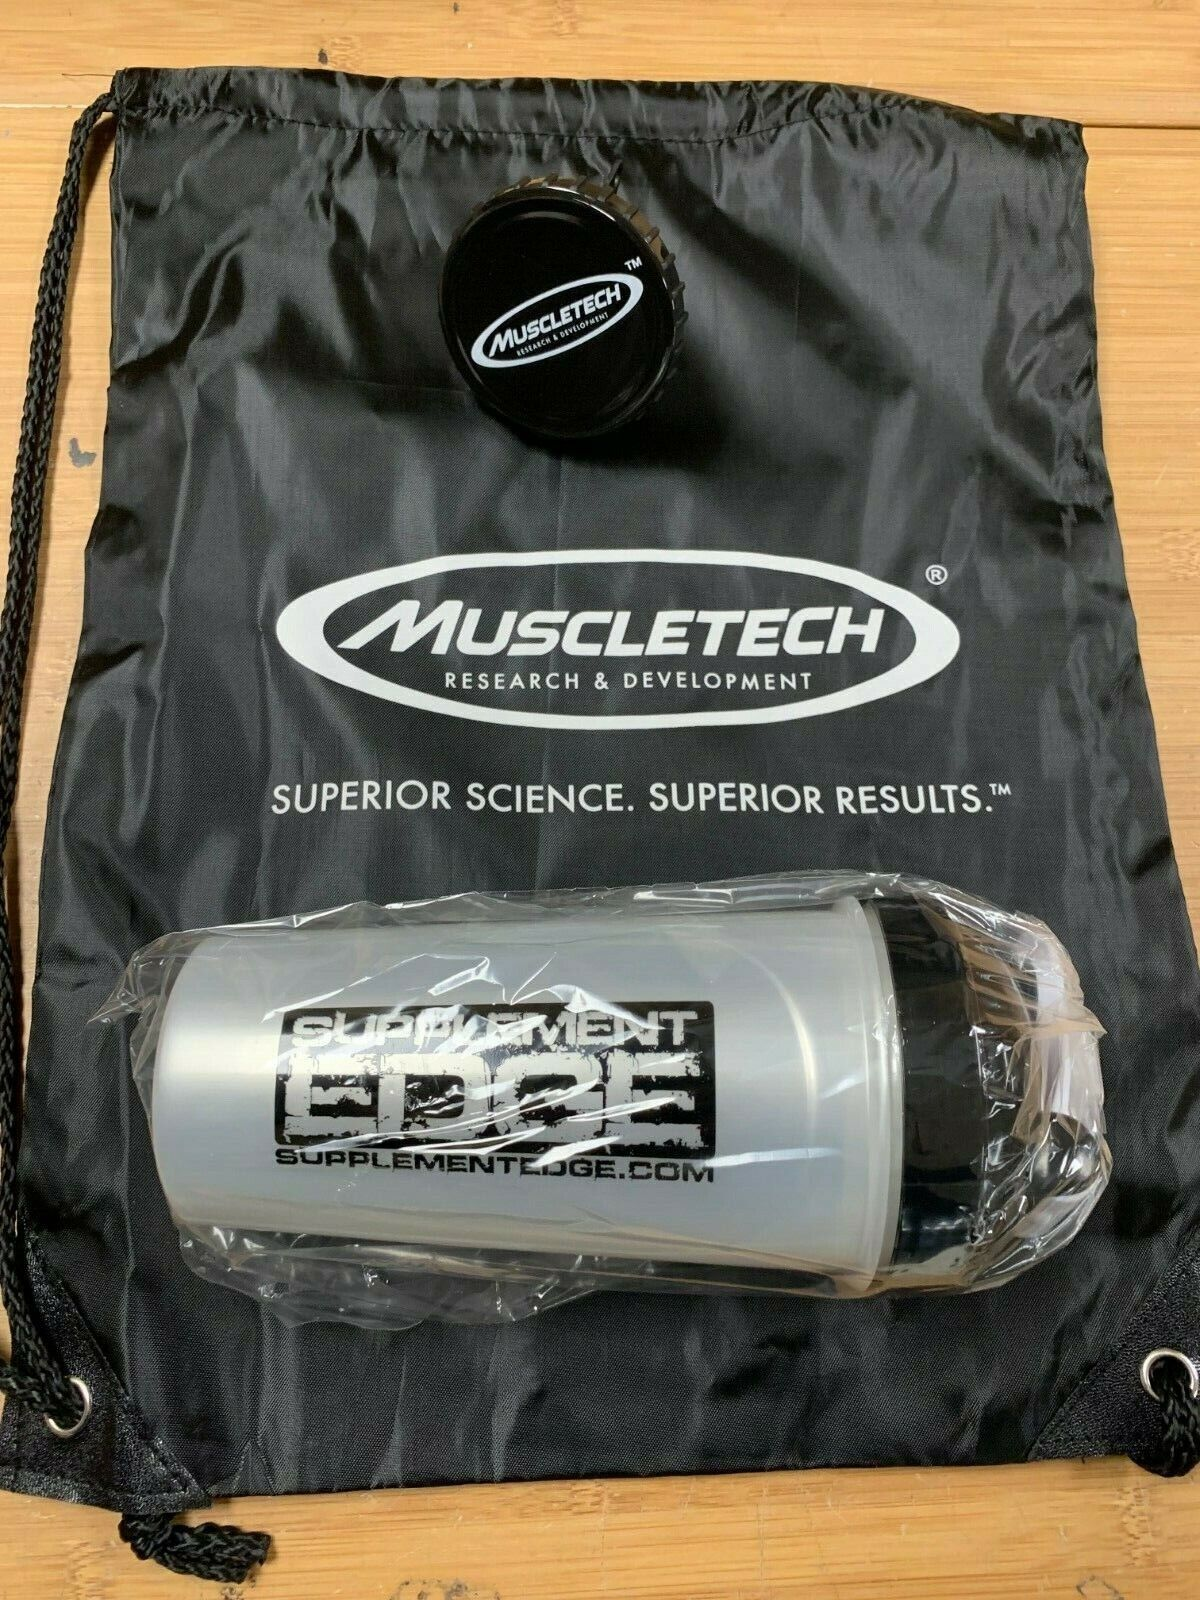 Protein Supplement Shaker, Powder Funnel & MuscleTech Sling